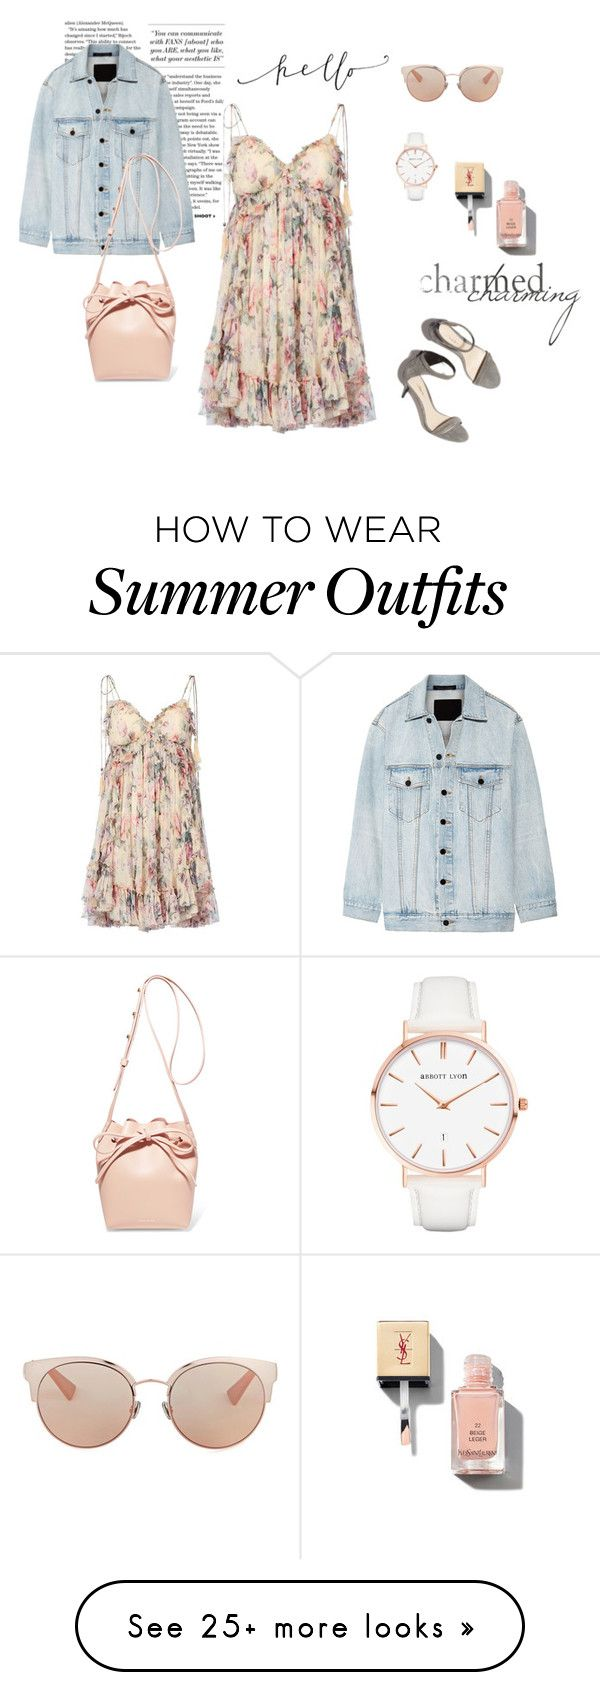 """PASTEL SUMMER OUTFIT"" by julianacheva on Polyvore featuring Zimmermann, Alexander Wang, 3.1 Phillip Lim, Mansur Gavriel, Yves Saint Laurent, Abbott Lyon and Christian Dior"